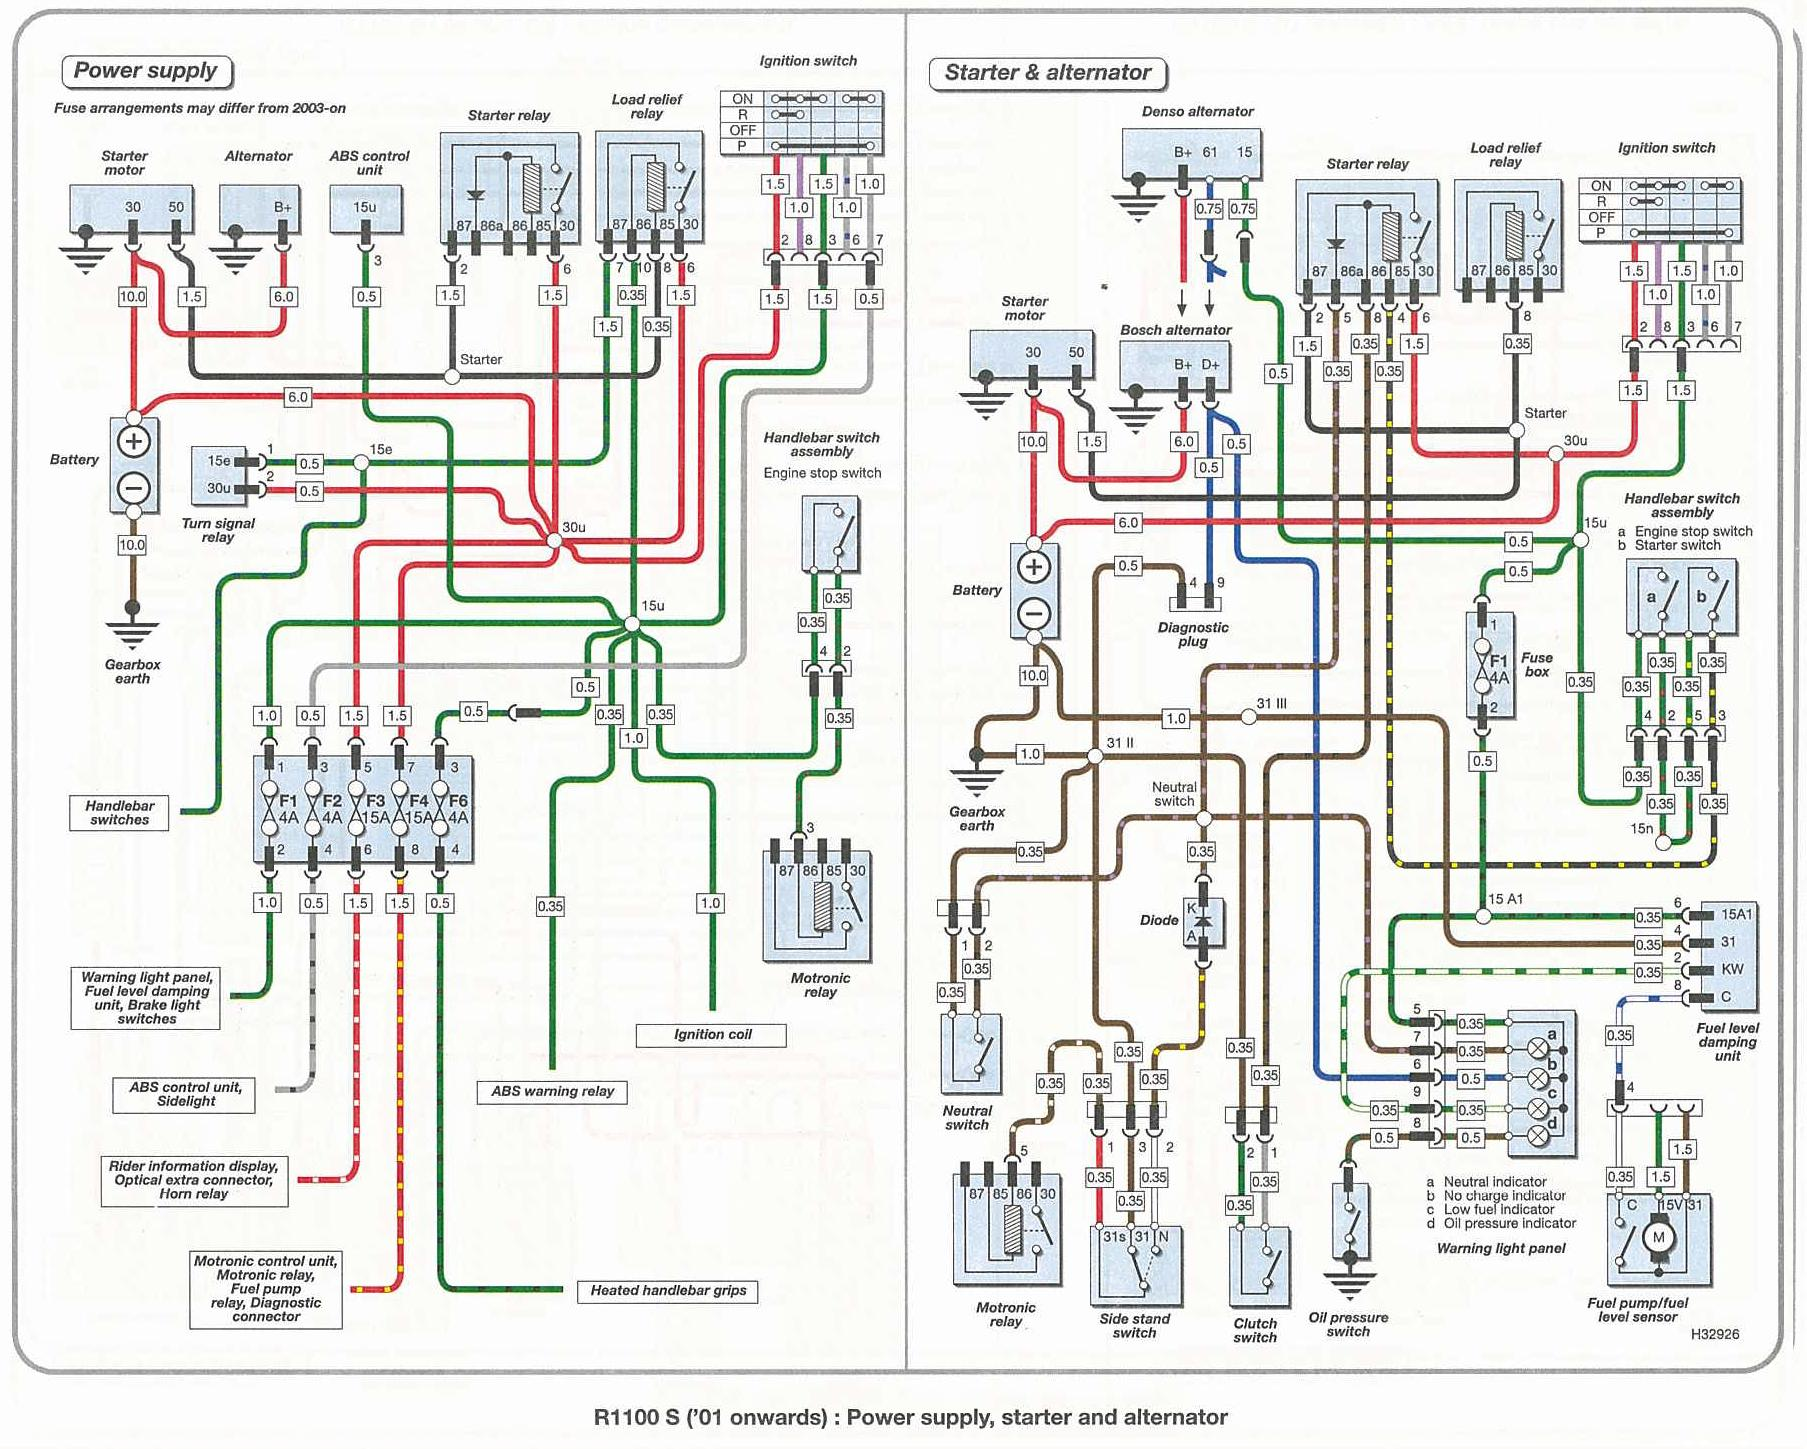 wiring05 bmw r1150gs wiring diagram bmw wiring diagrams instruction bmw r1150gs wiring diagram at bakdesigns.co